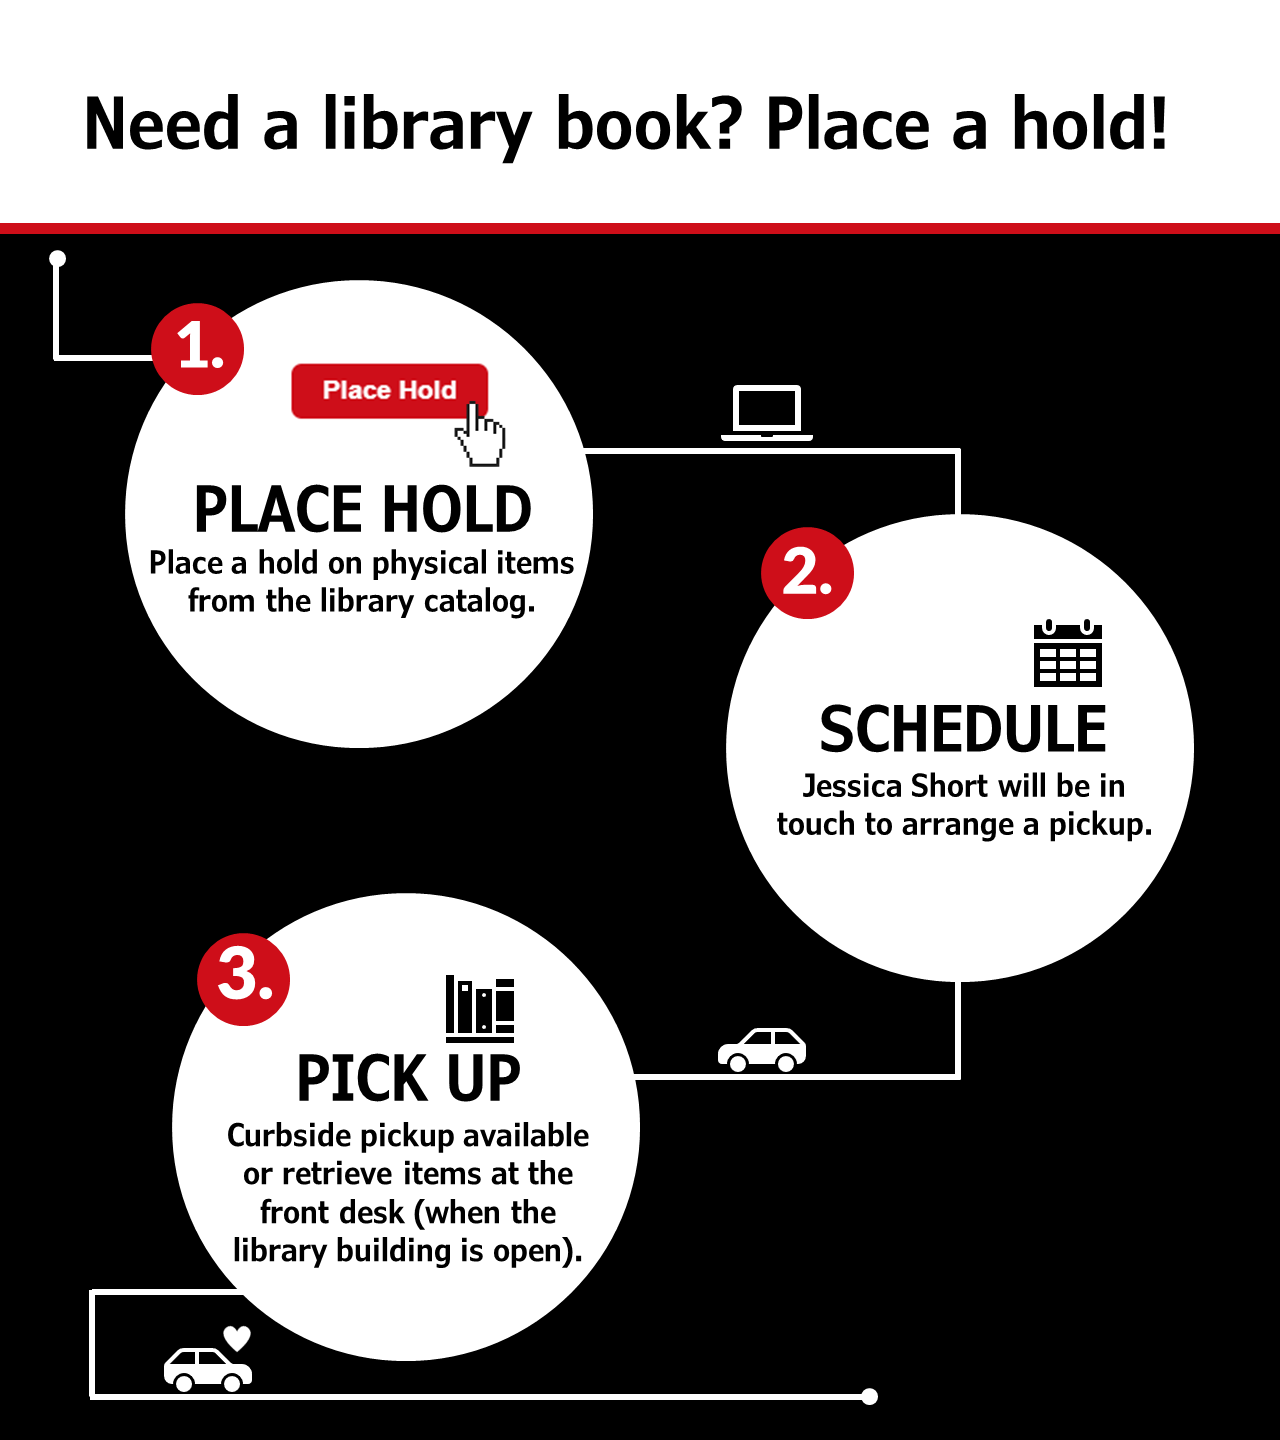 Need a Library book? Place a hold!